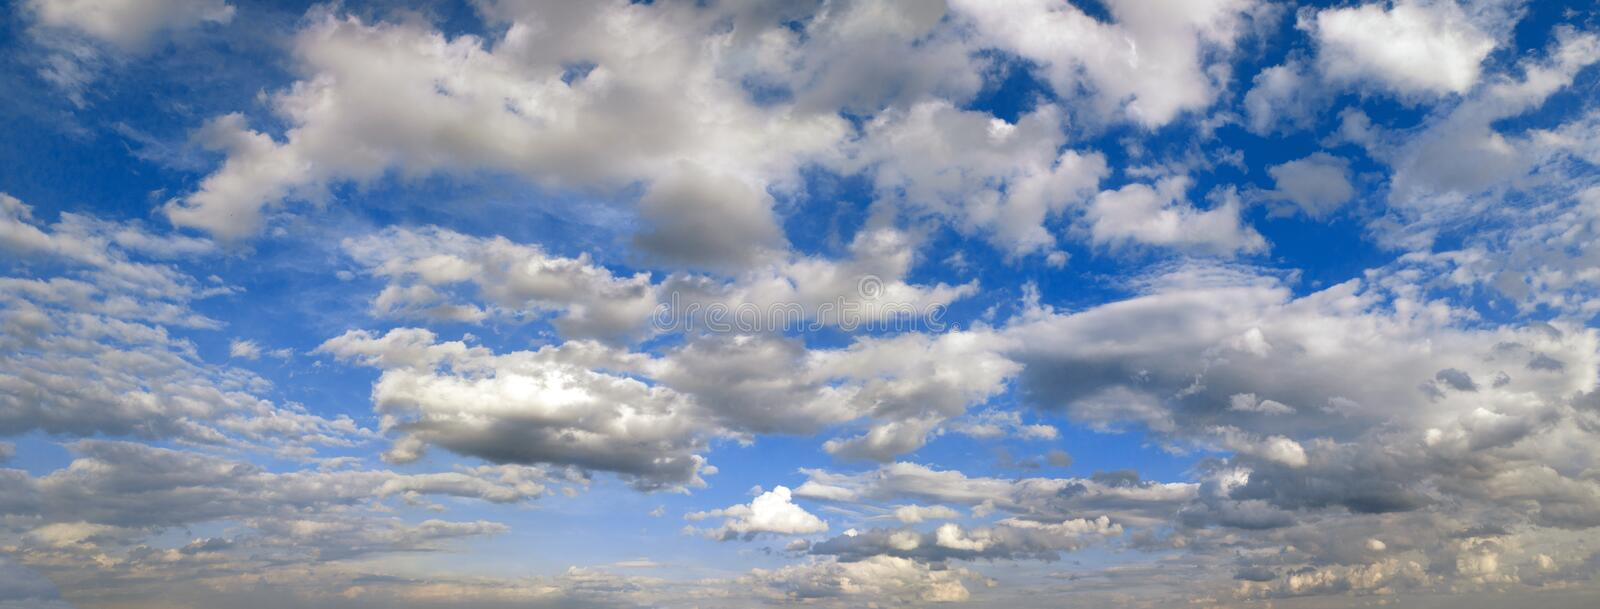 Panoramic photo of the blue sky with clouds in high resolution stock image